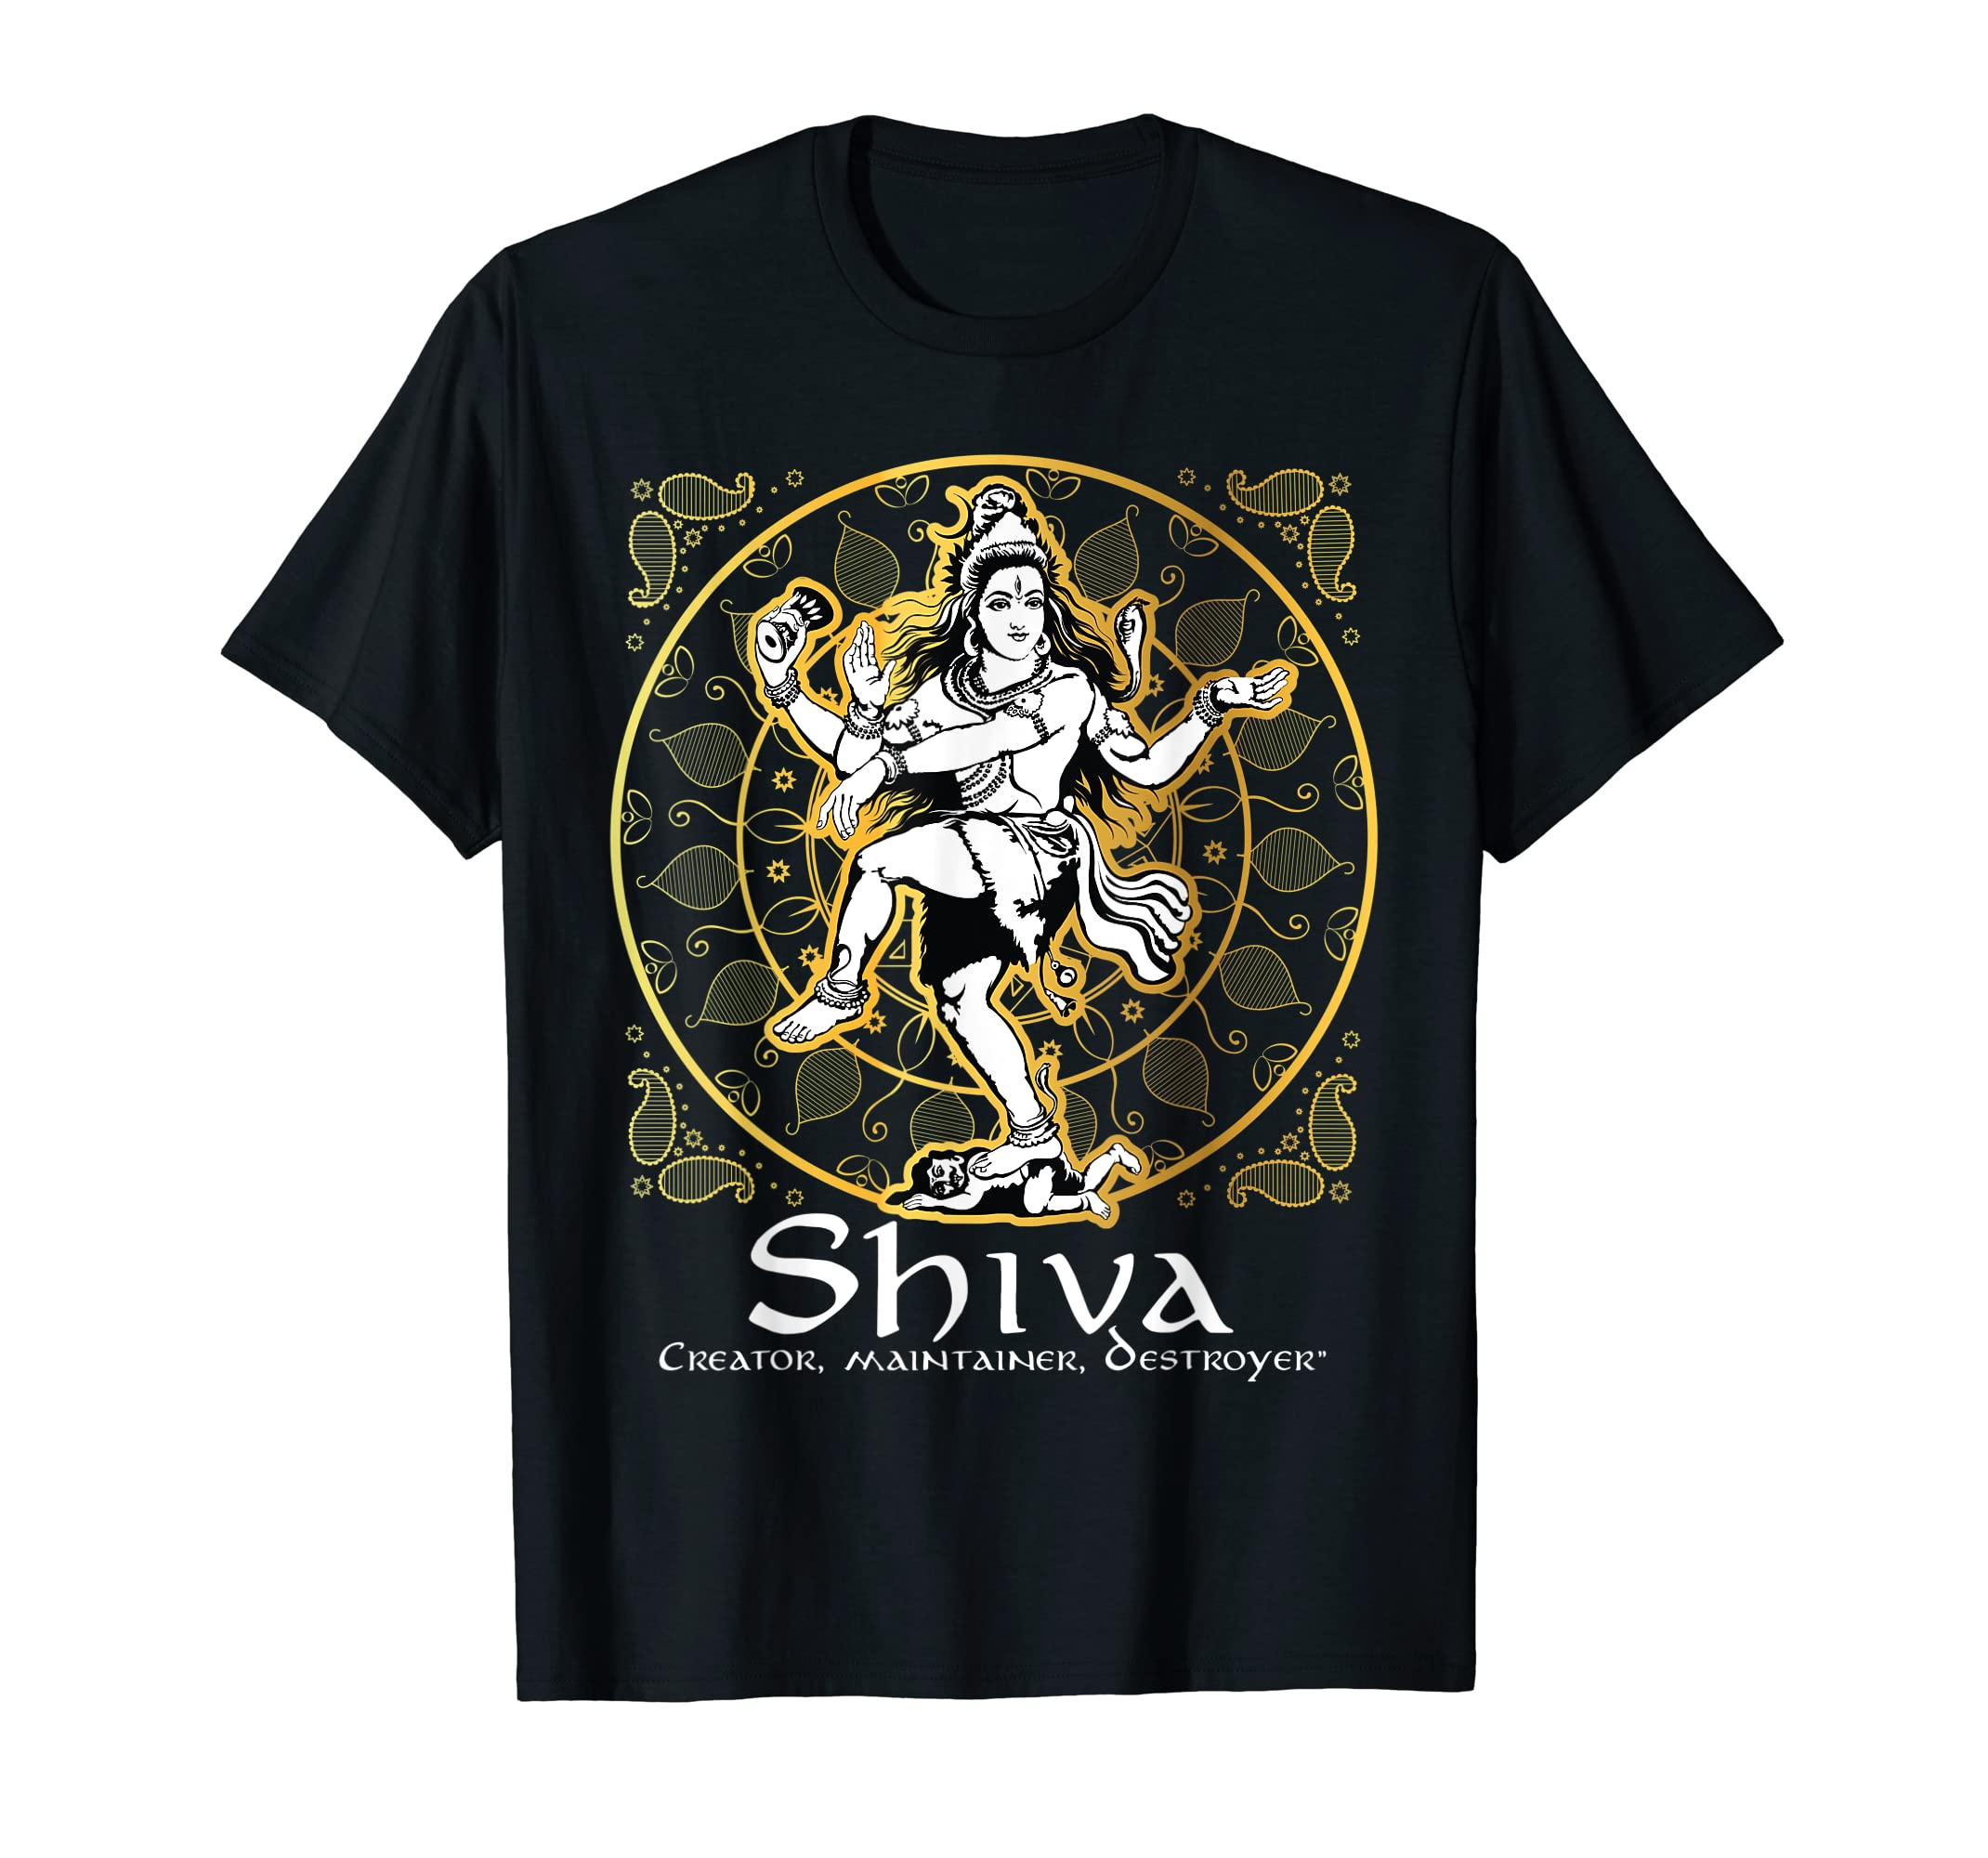 addcd0ea Amazon.com: Lord Shiva T Shirt | Hinduism Gift | Hindu Gods & Deities:  Clothing